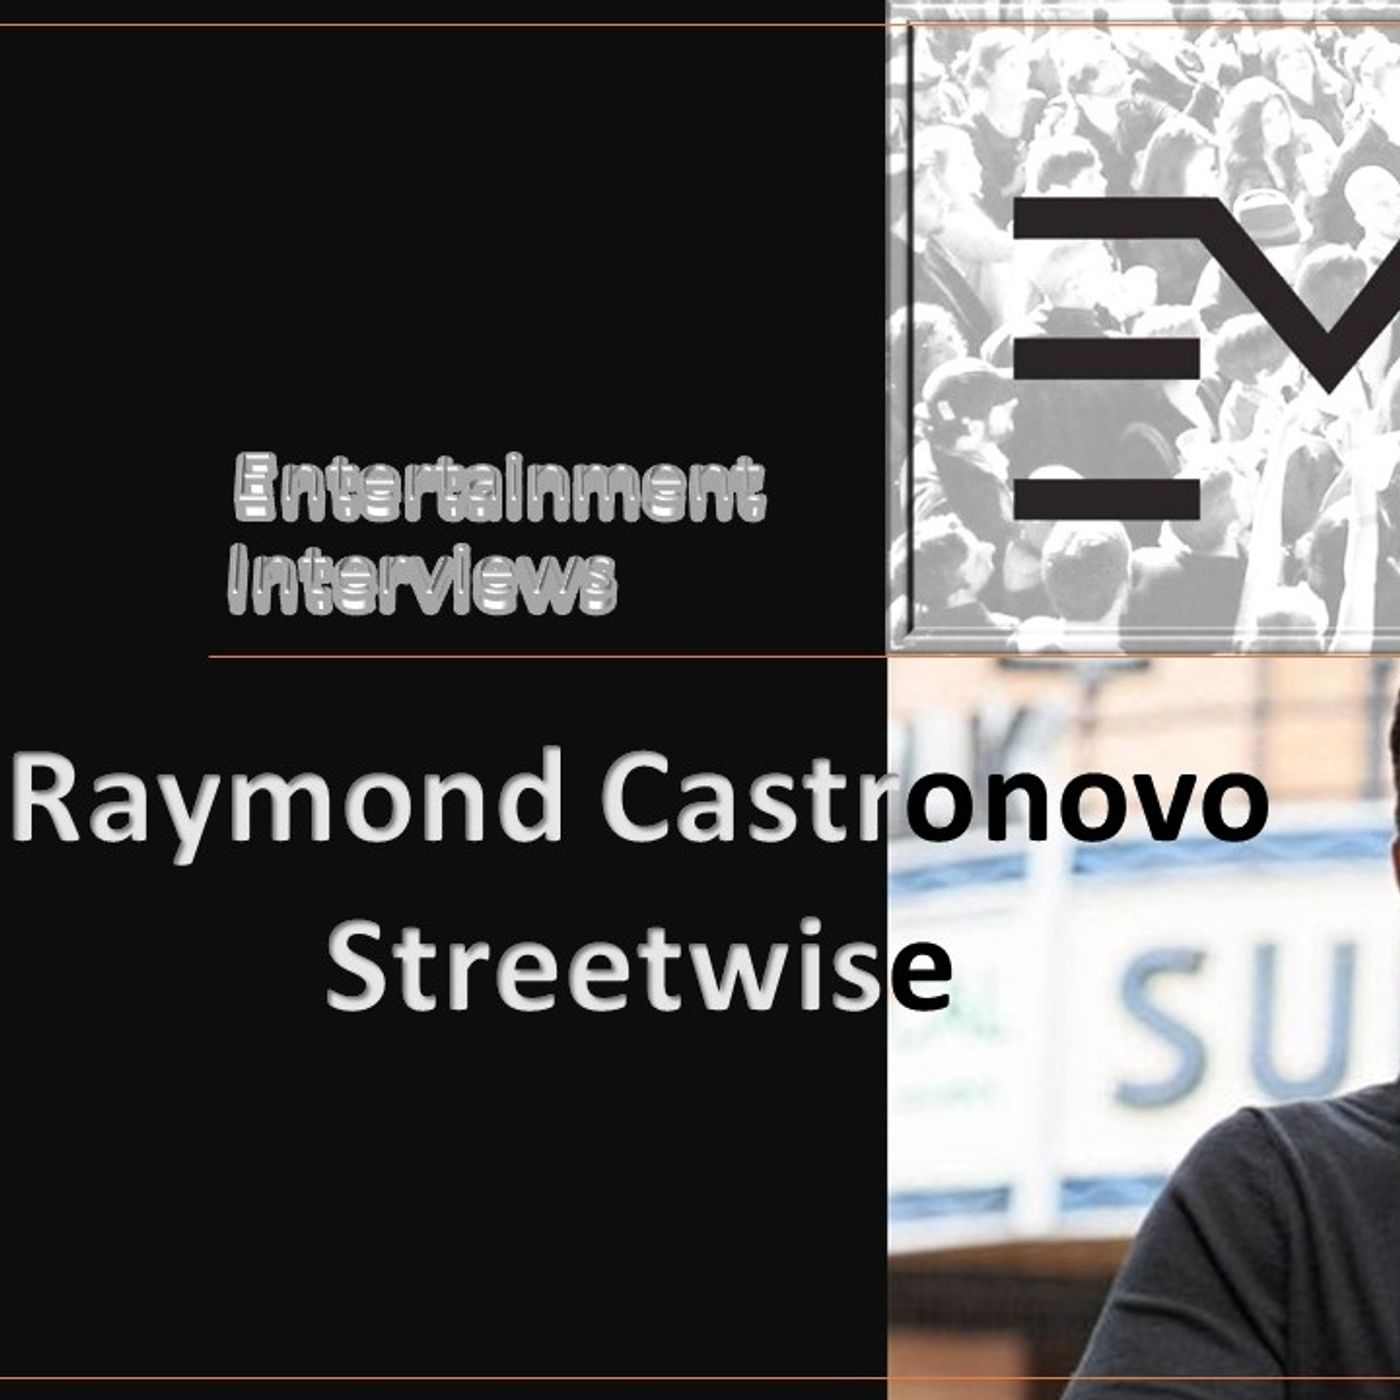 Raymond Castronovo_Streetwise_brought to you by EMPKT PR_4_22_21